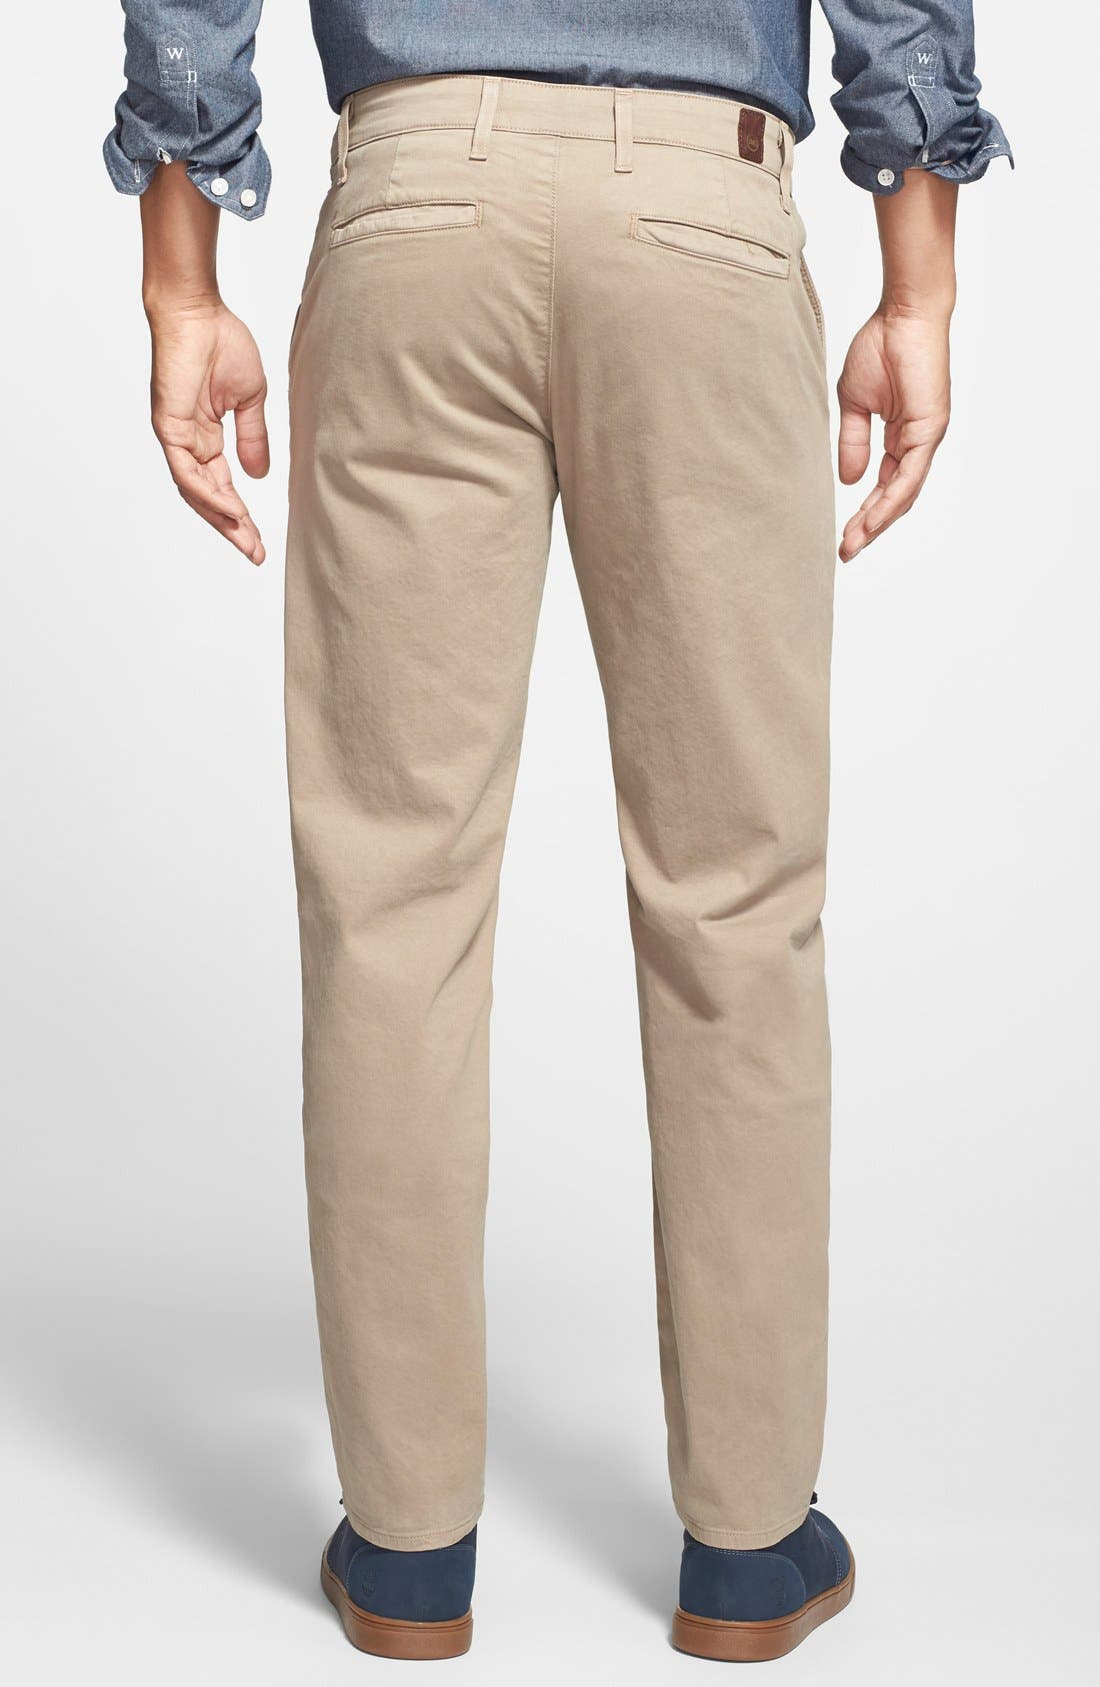 'The Lux' Tailored Straight Leg Chinos,                             Alternate thumbnail 4, color,                             Wheat